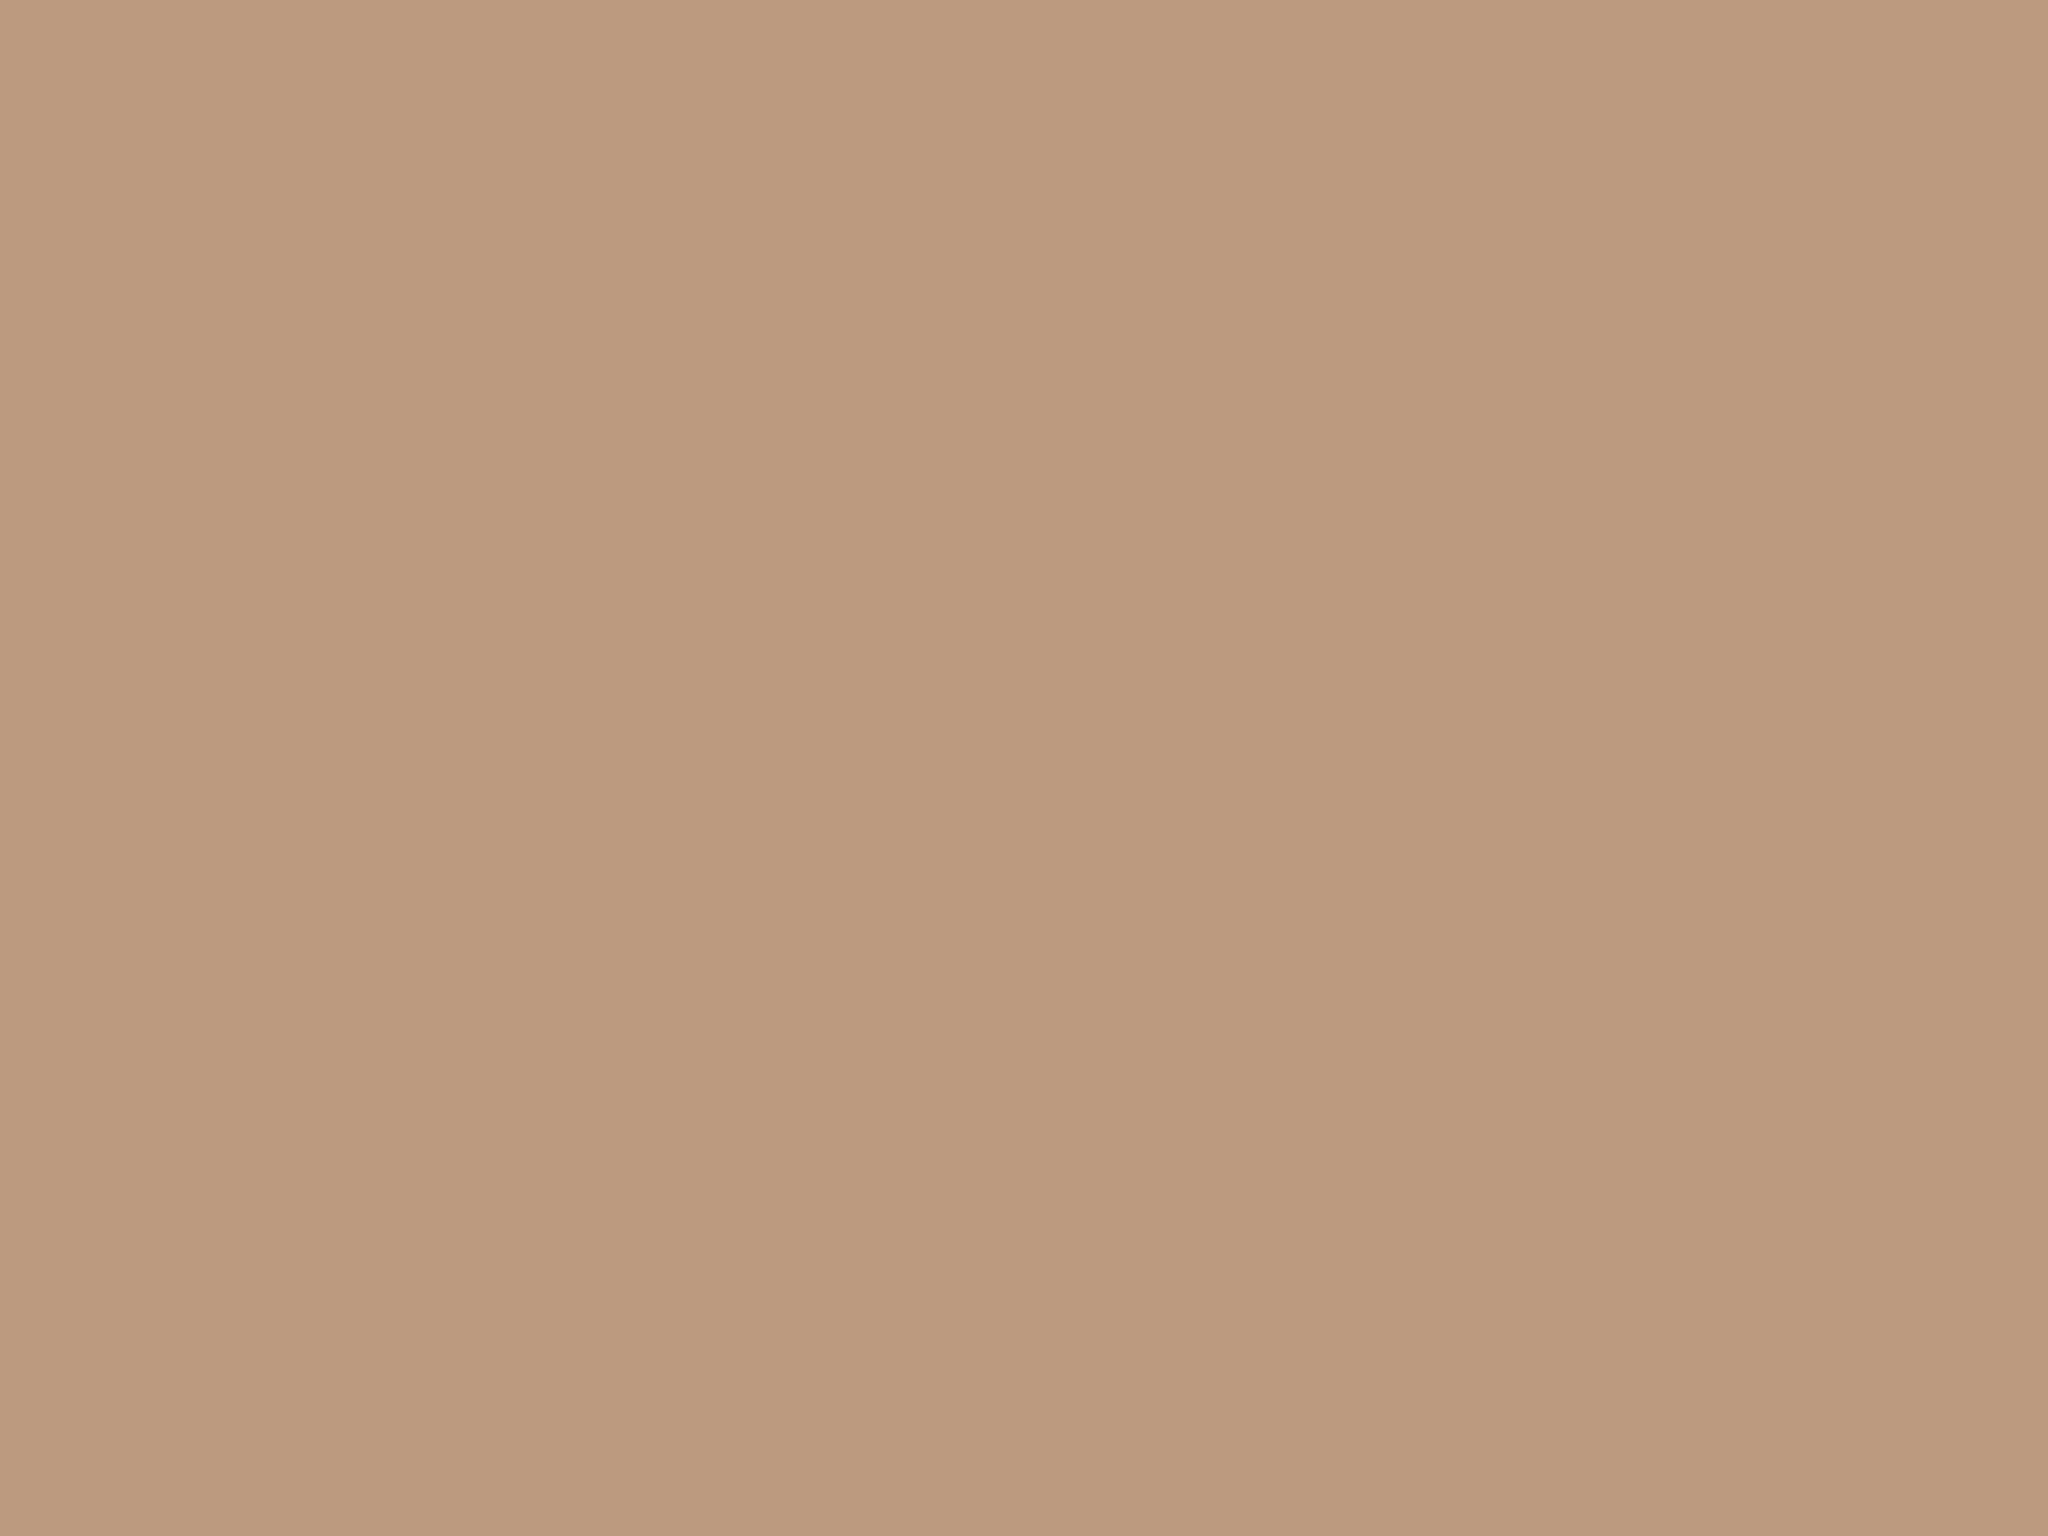 2048x1536 Pale Taupe Solid Color Background